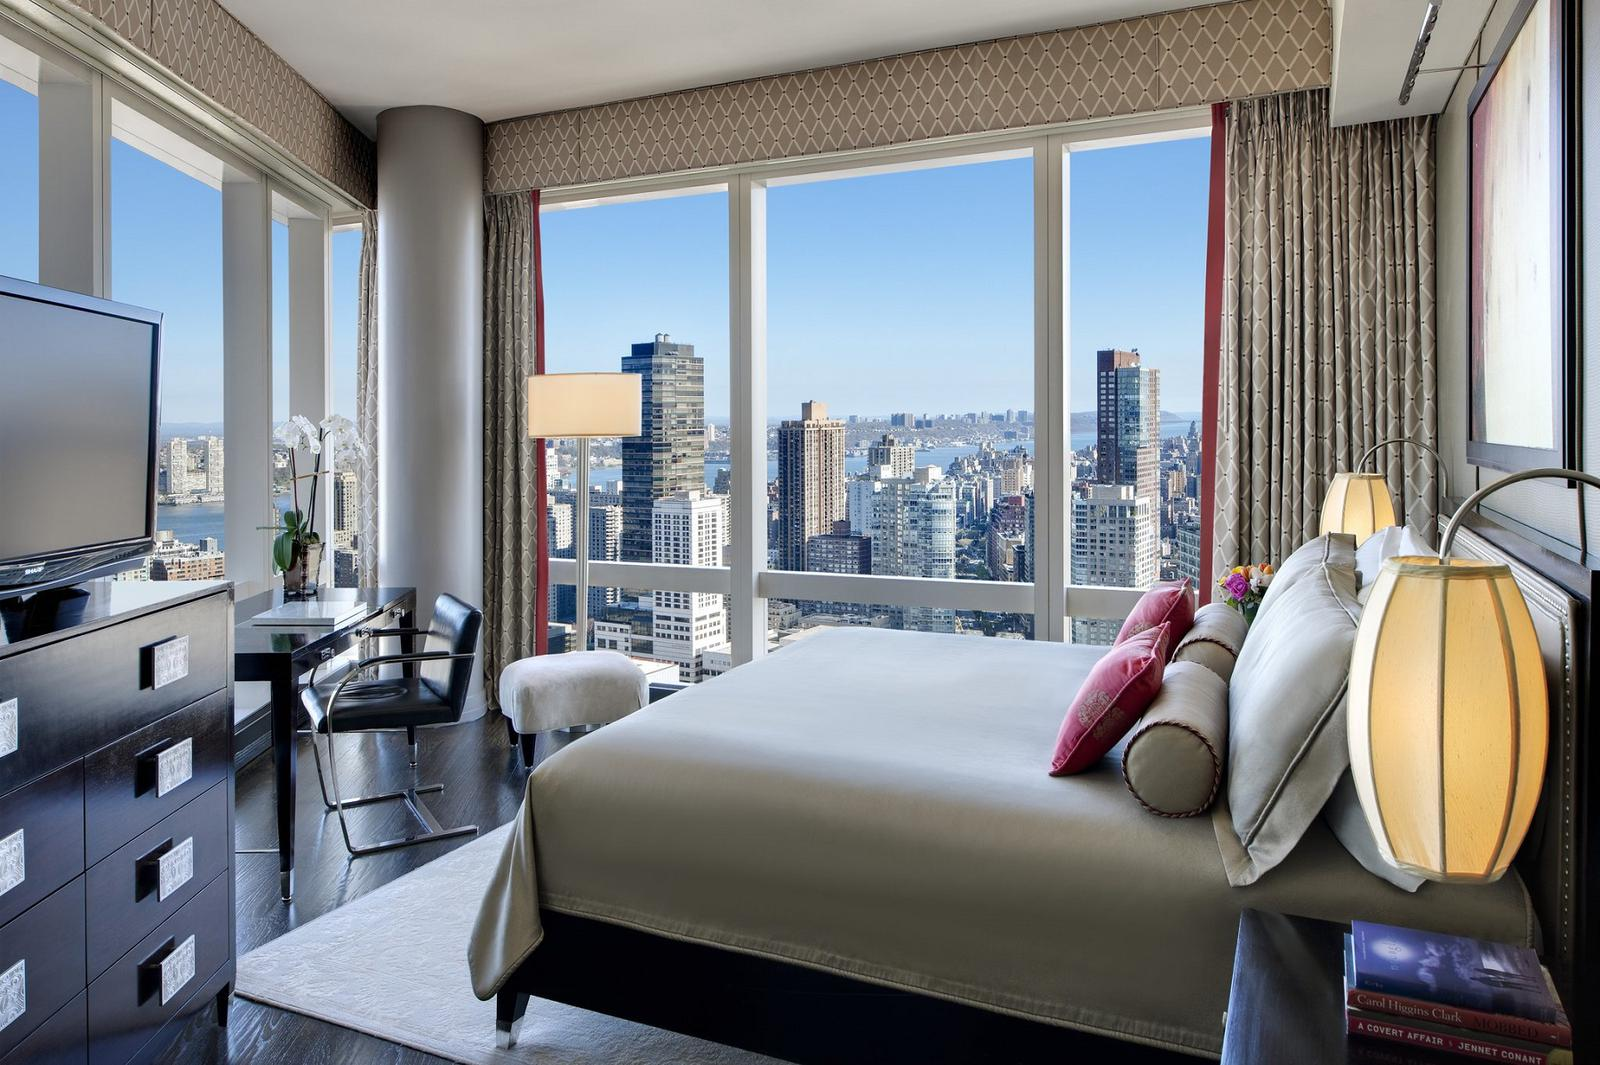 New York Hotels That Offer The Best View Of The City